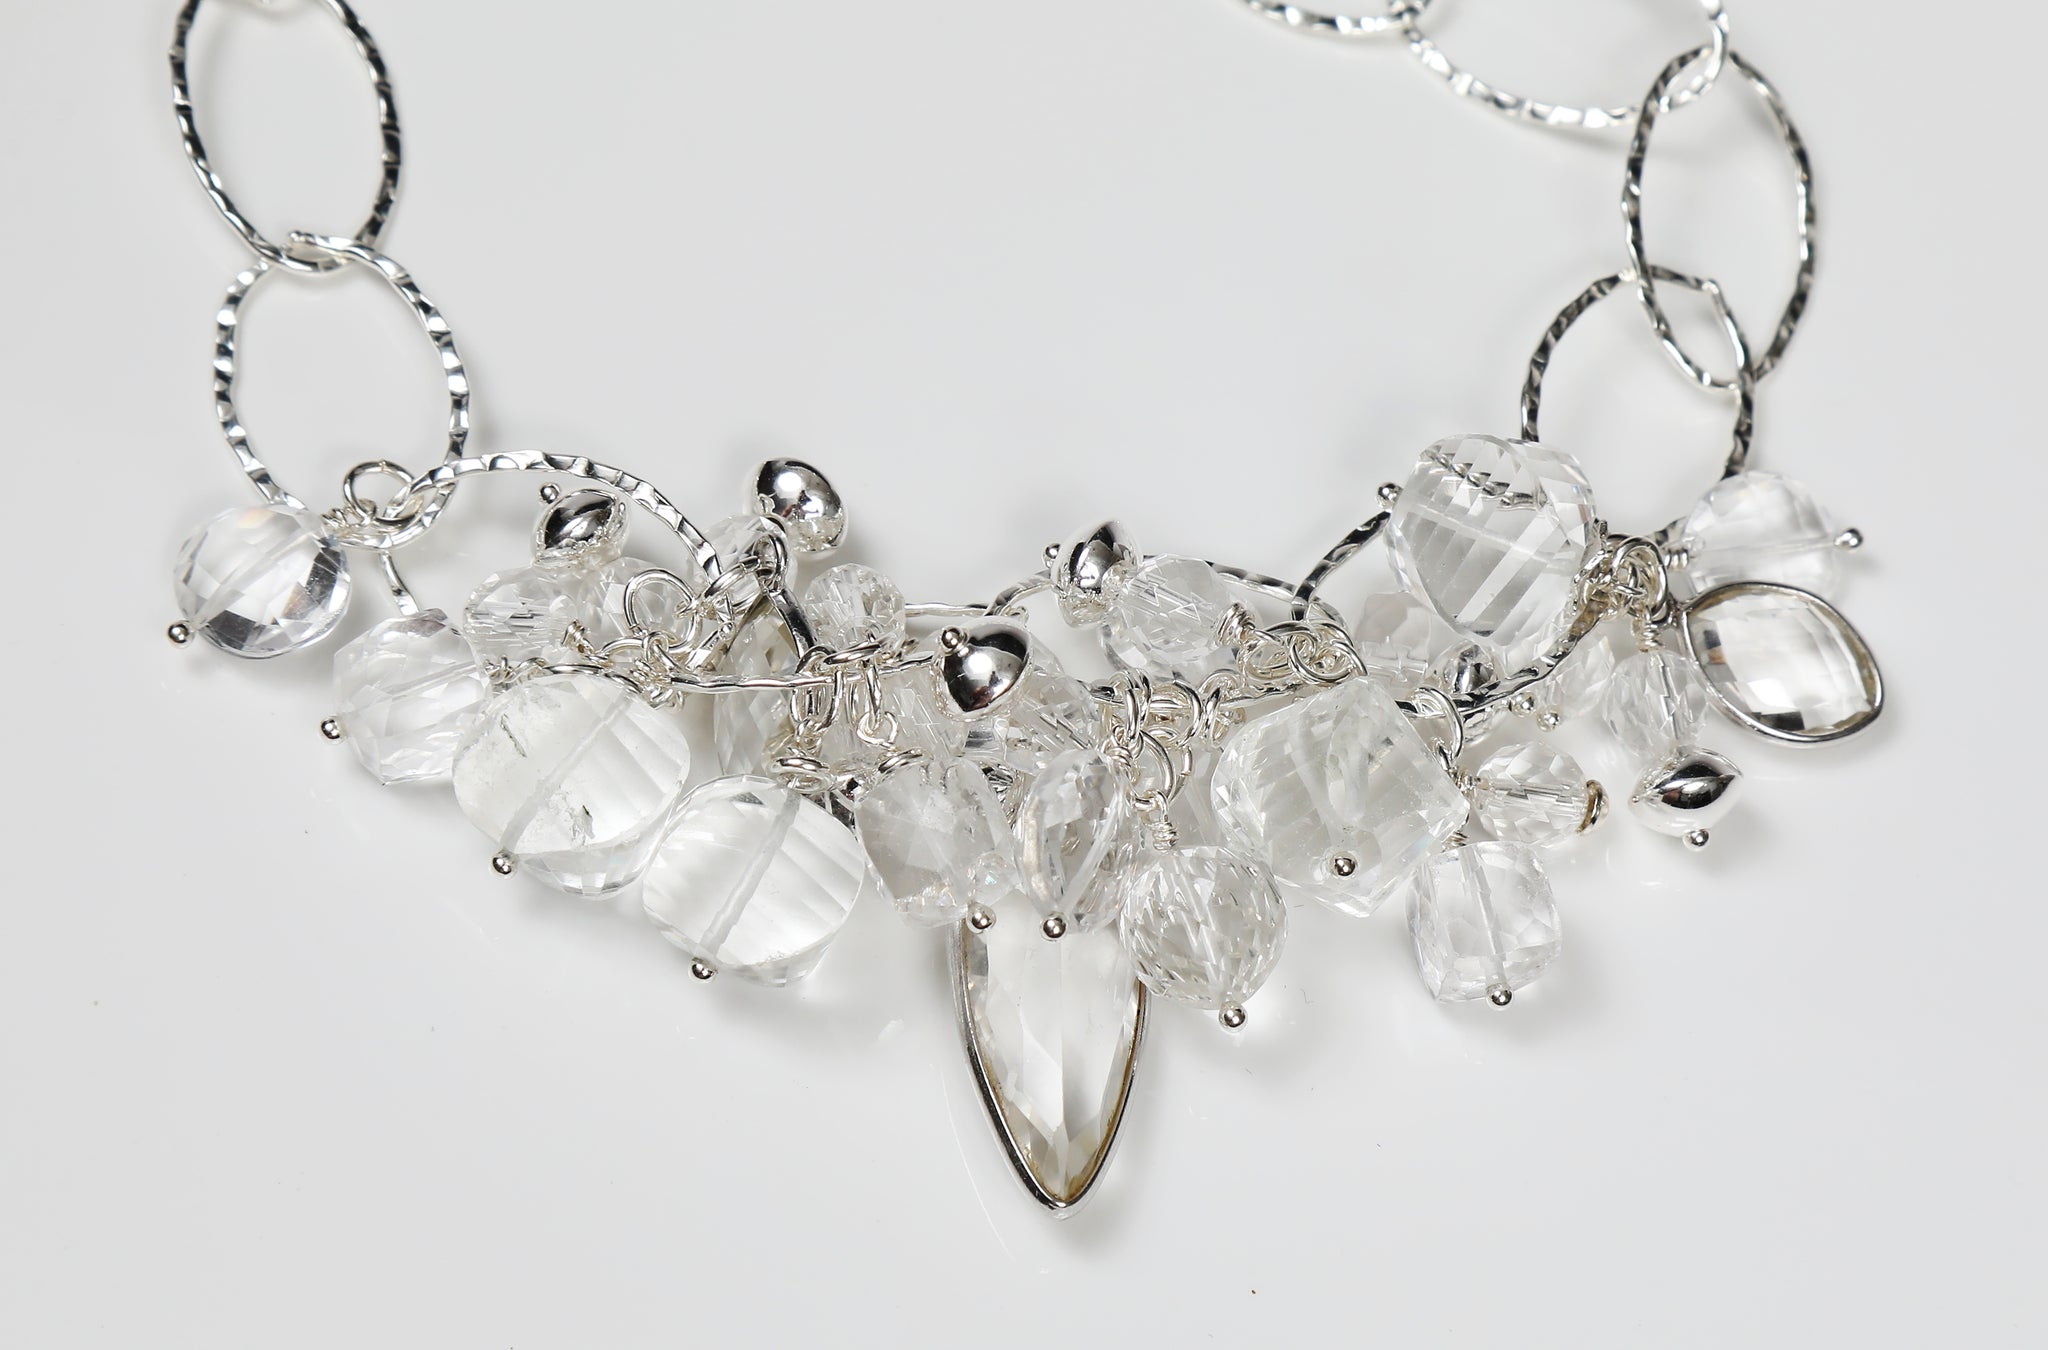 Sparkle and Jazz, a necklace